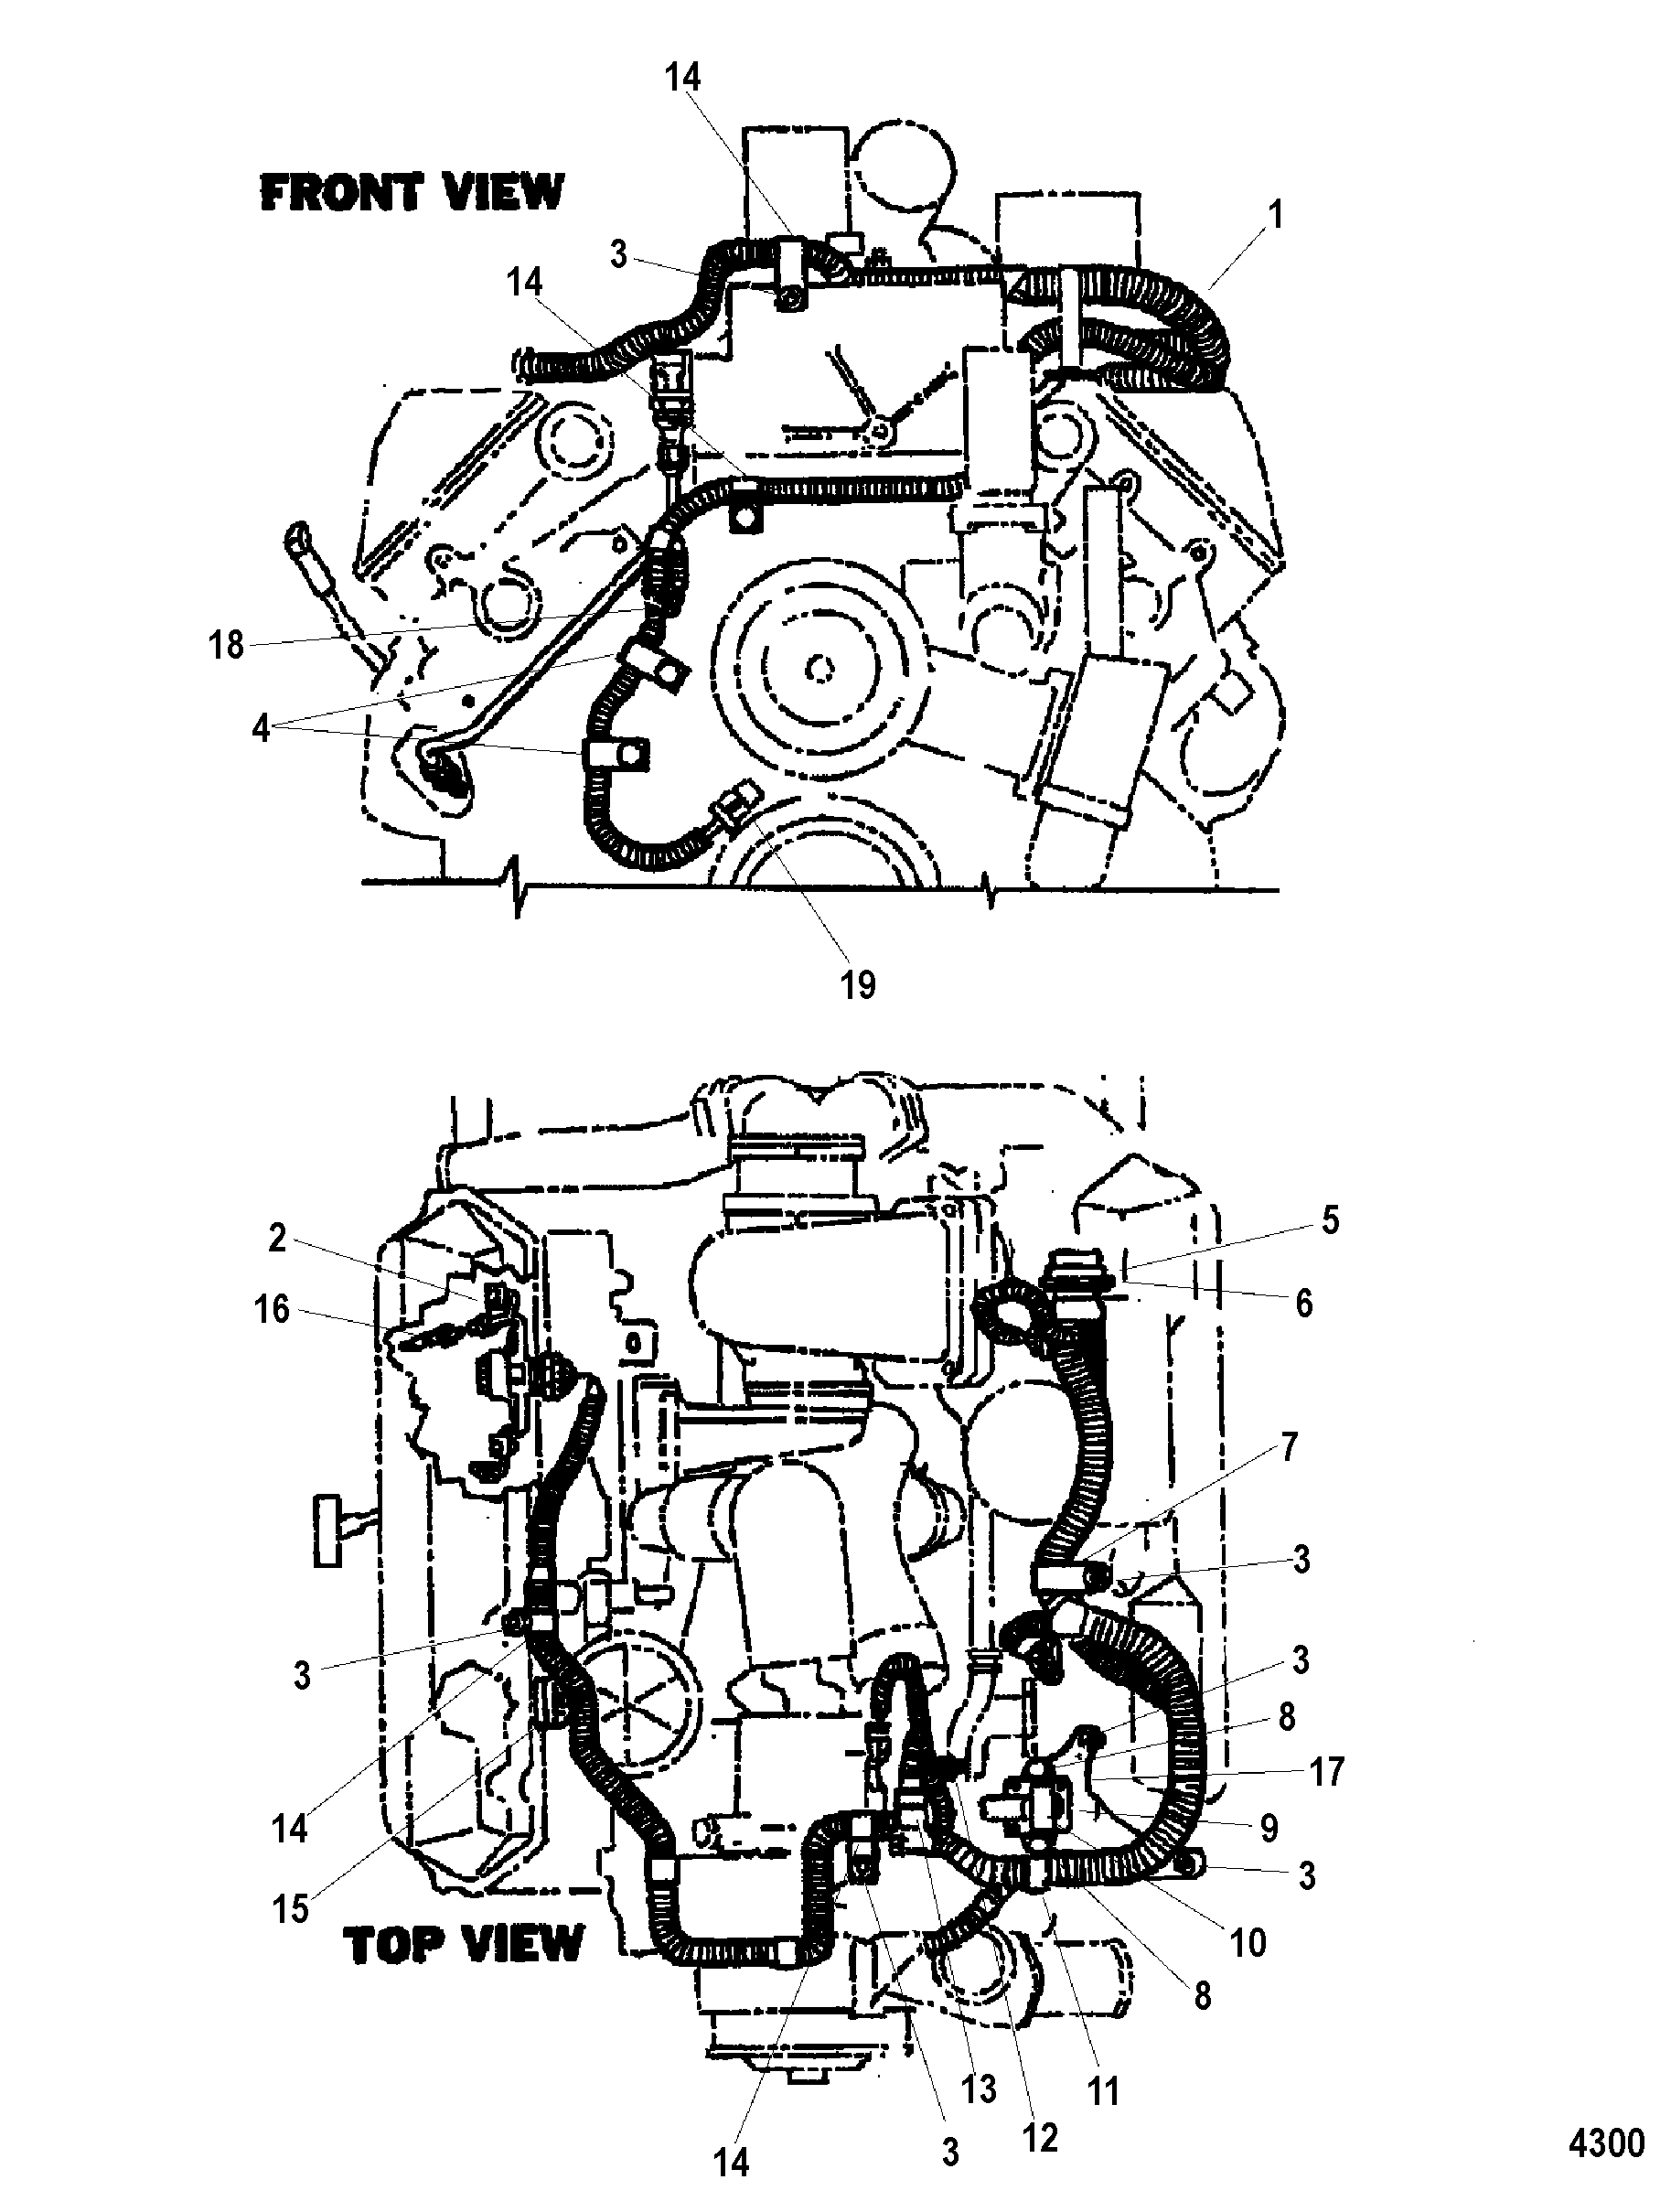 mercruiser alternator wiring diagram with Show Product on 454 Chevrolet Engine Diagram additionally Wire Diagram Volvo Penta also Show product together with Chevy V8 350 5 7l Engine Diagram as well 2.